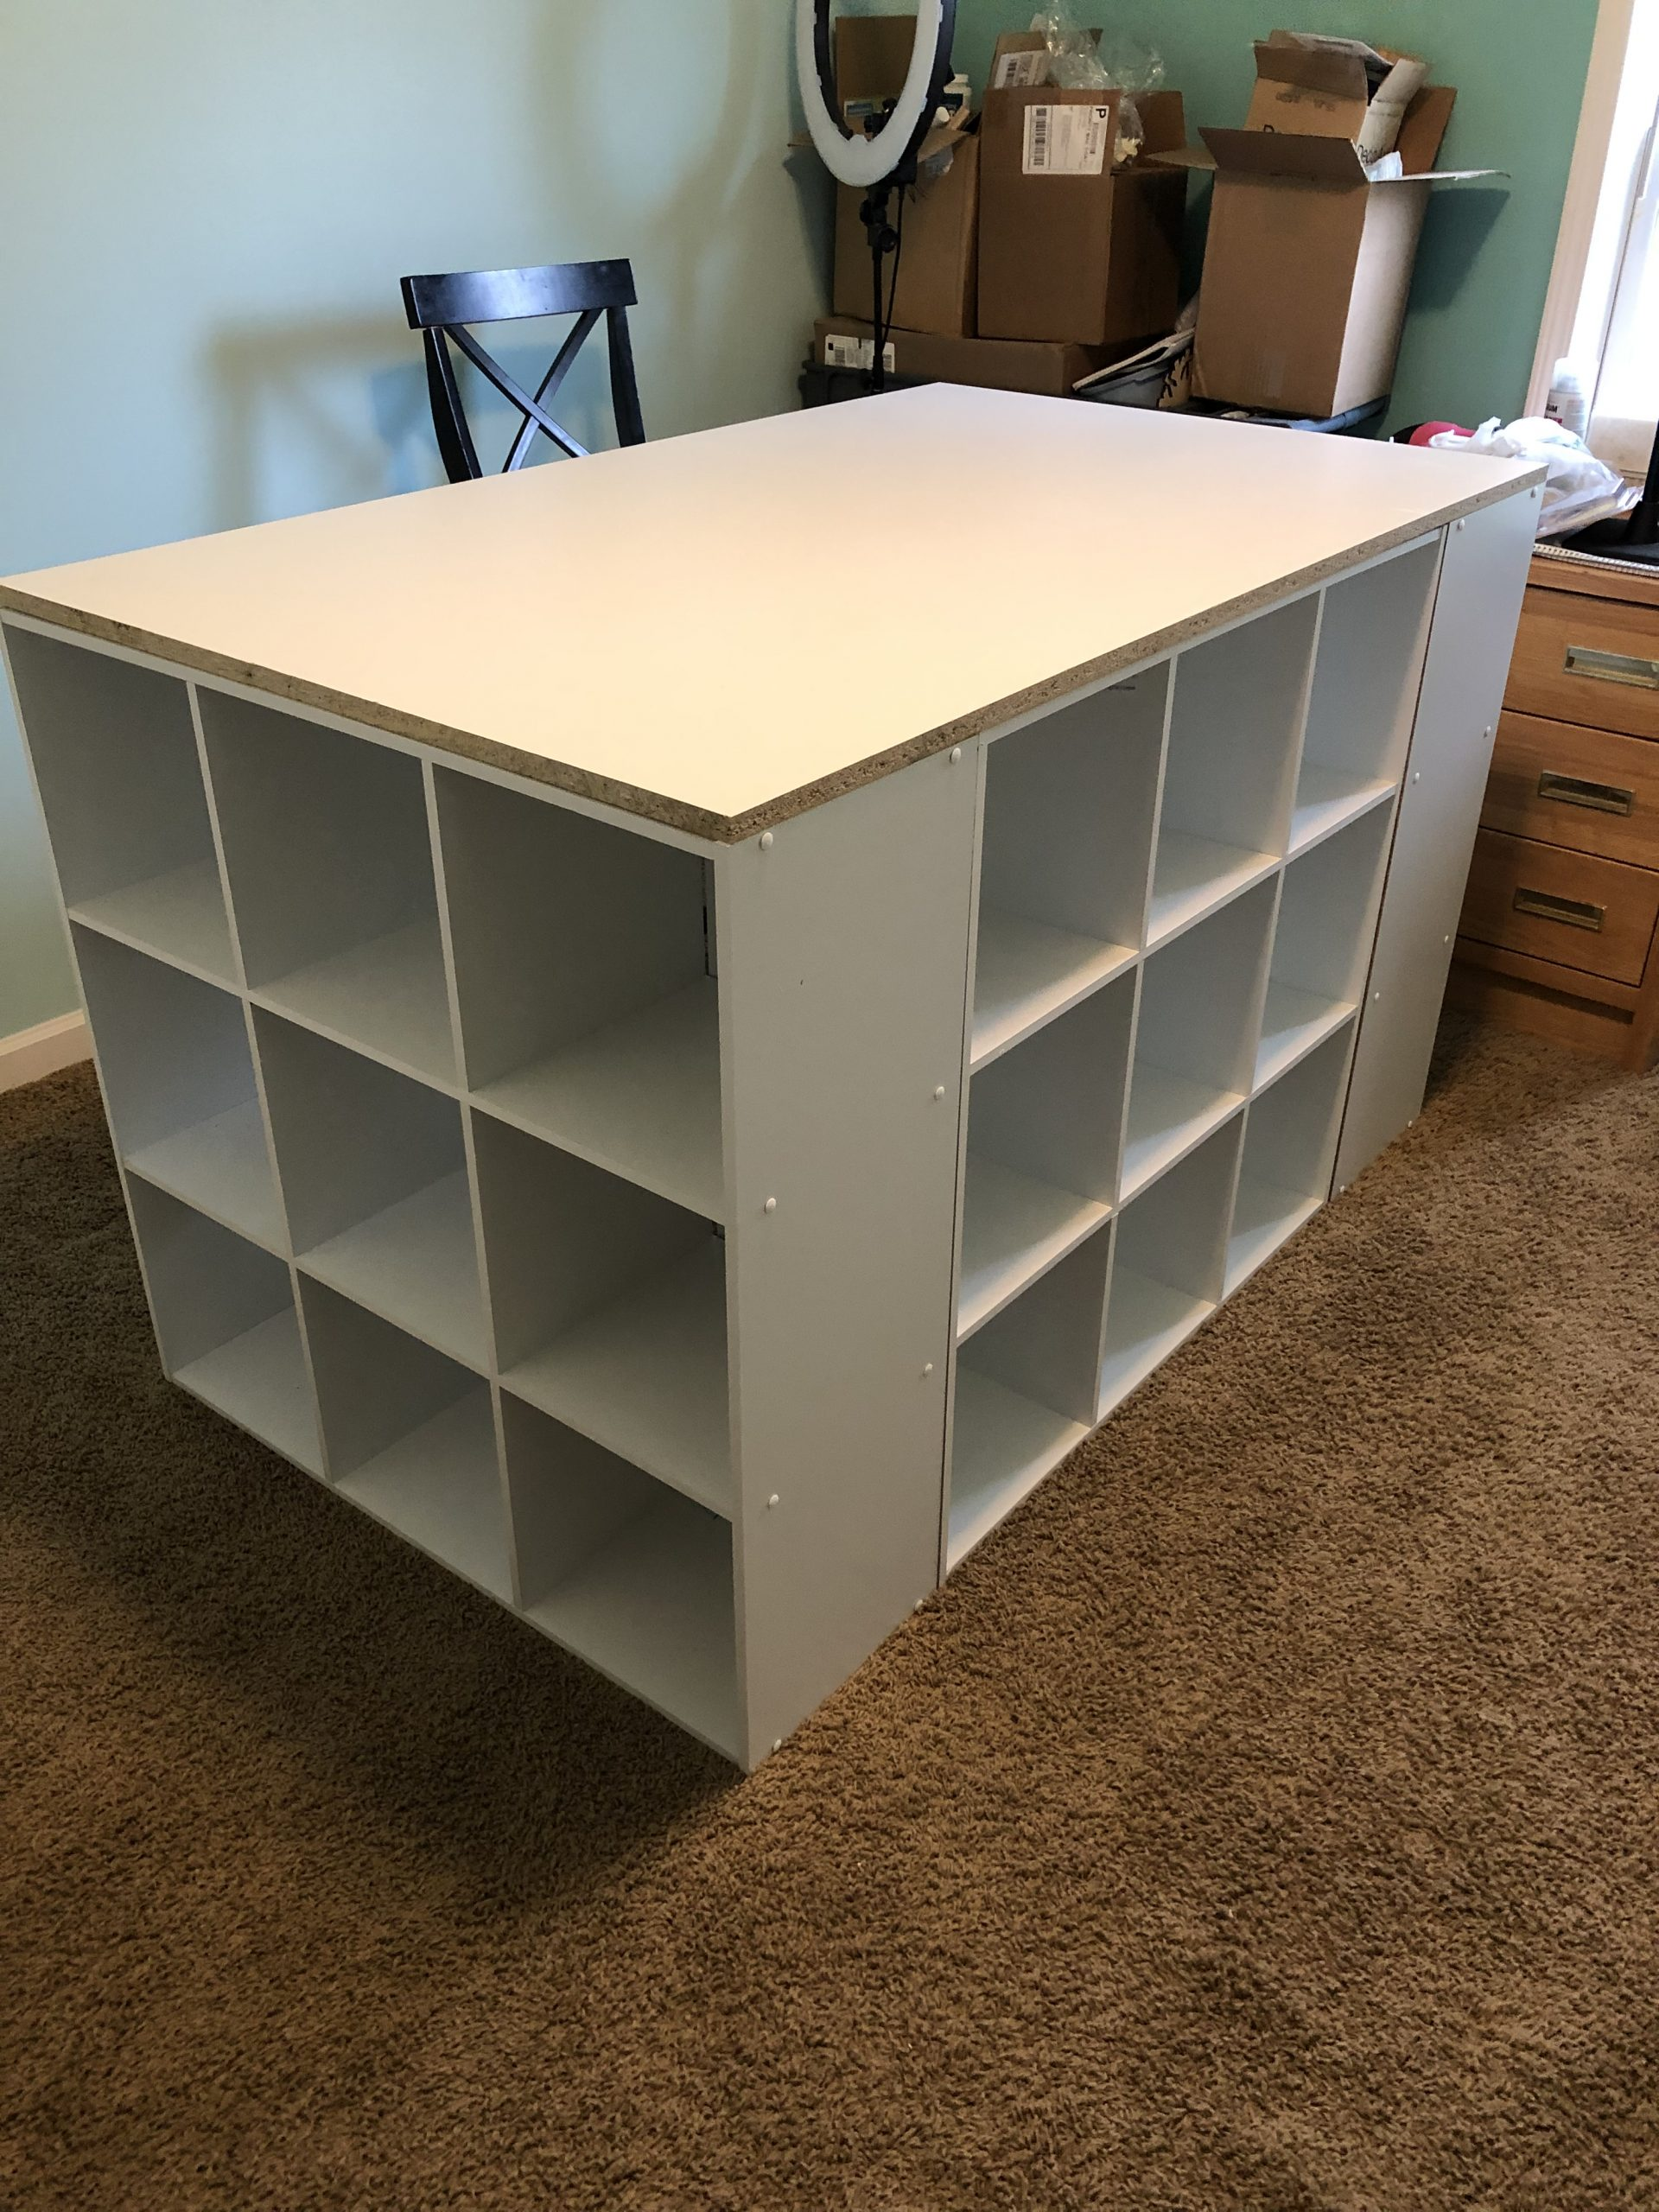 Diy Desk Island For Your Craft Room Southern Adoornments Decor